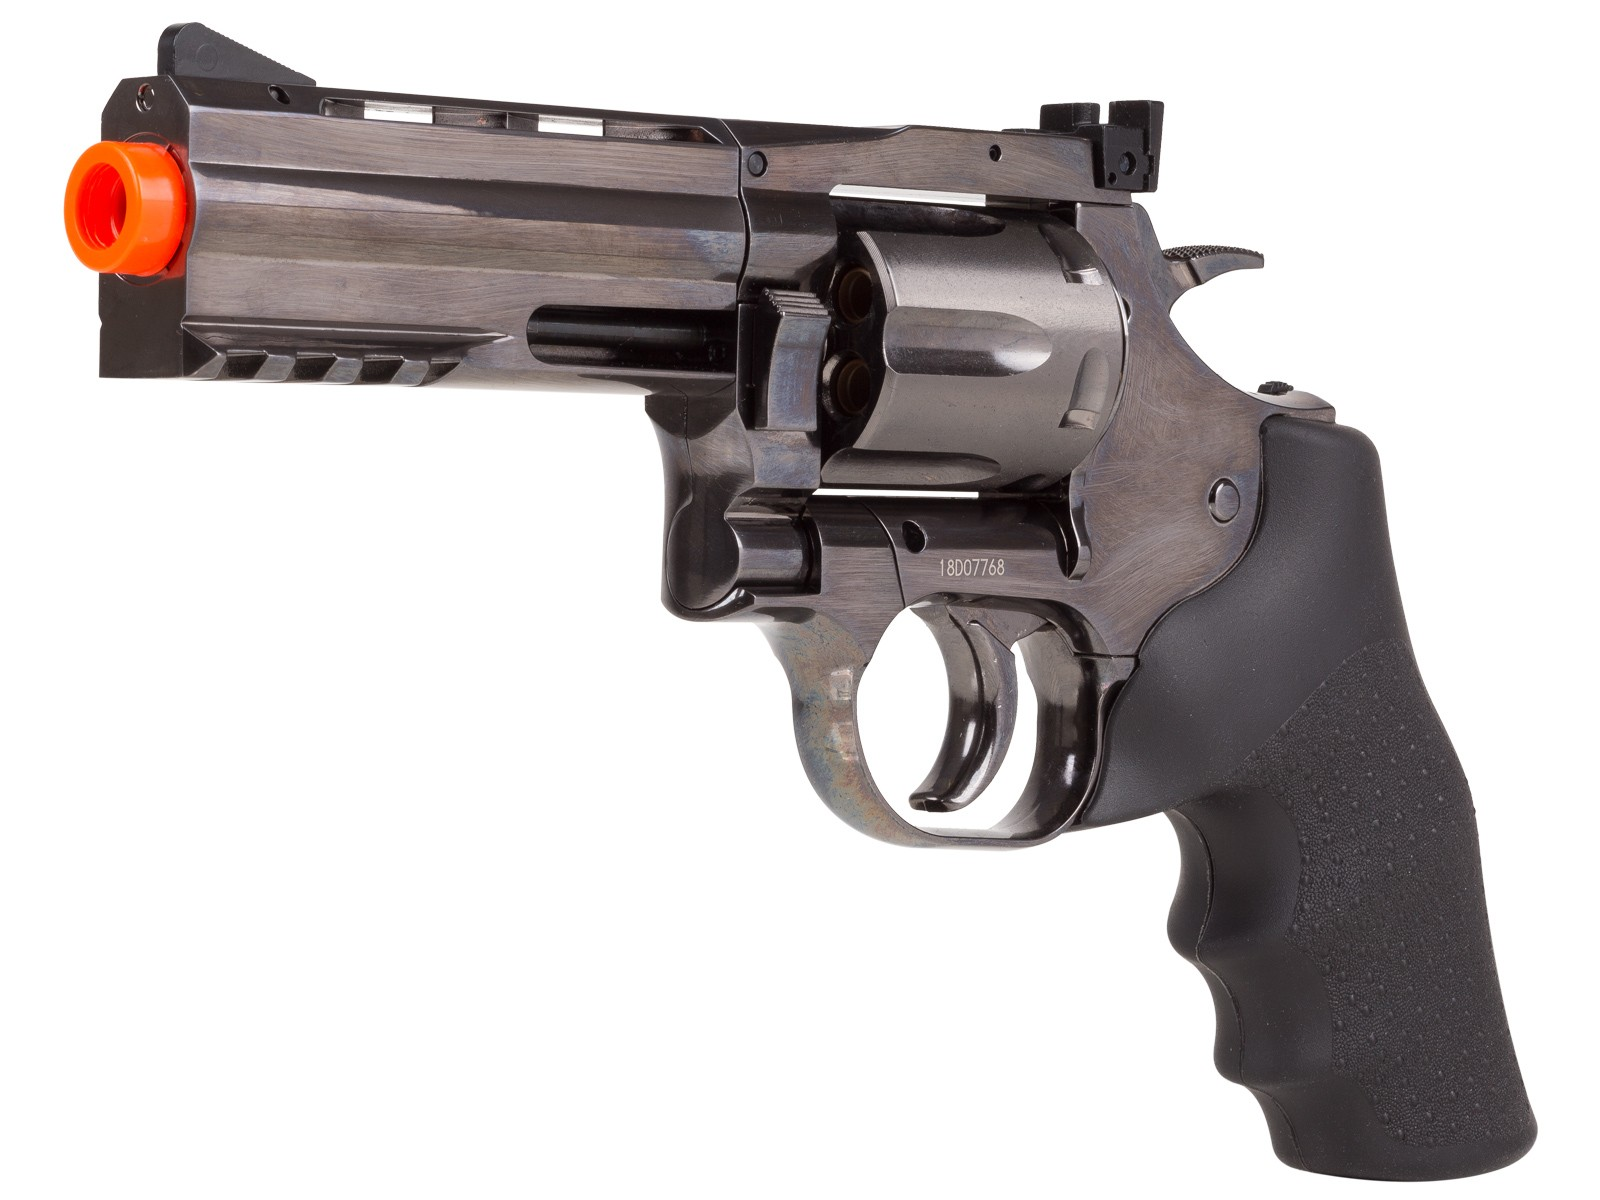 Cheap Dan Wesson 715 4″ CO2 Airsoft Revolver, Steel Grey 6mm